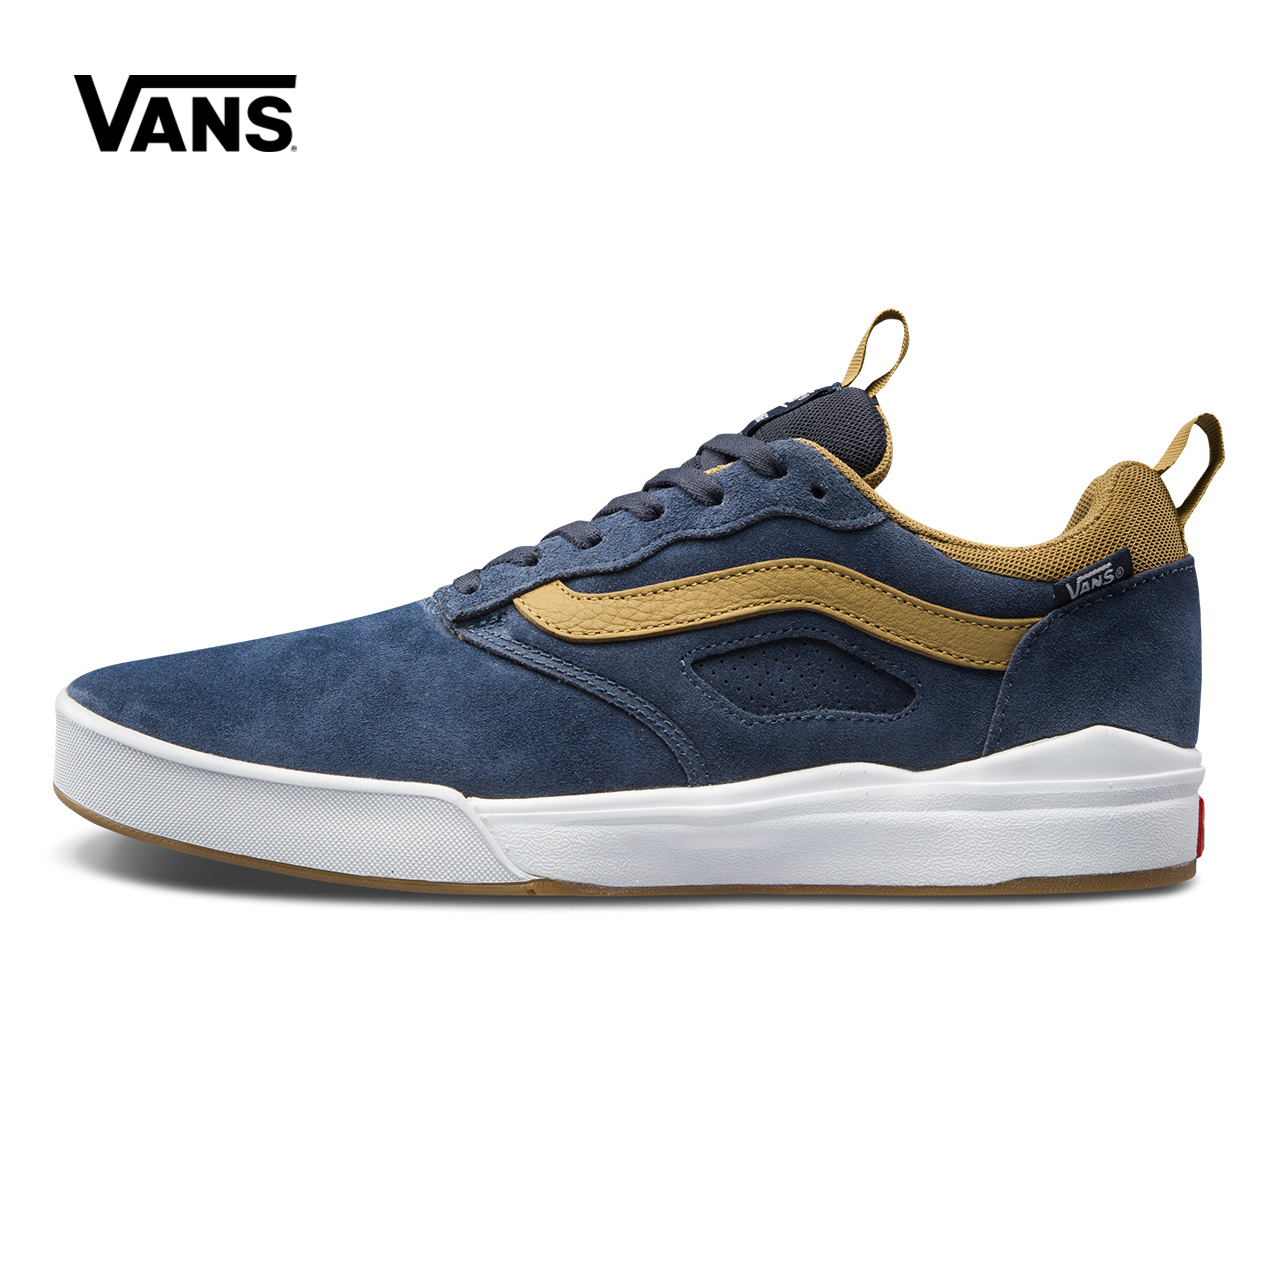 8ebfc38b43b5 Original New Arrival Vans Men s Ultrarange Pro Low-top Skateboarding Shoes  Sneakers Sport Outdoor Canvas VN0A3DOSLUY QNP